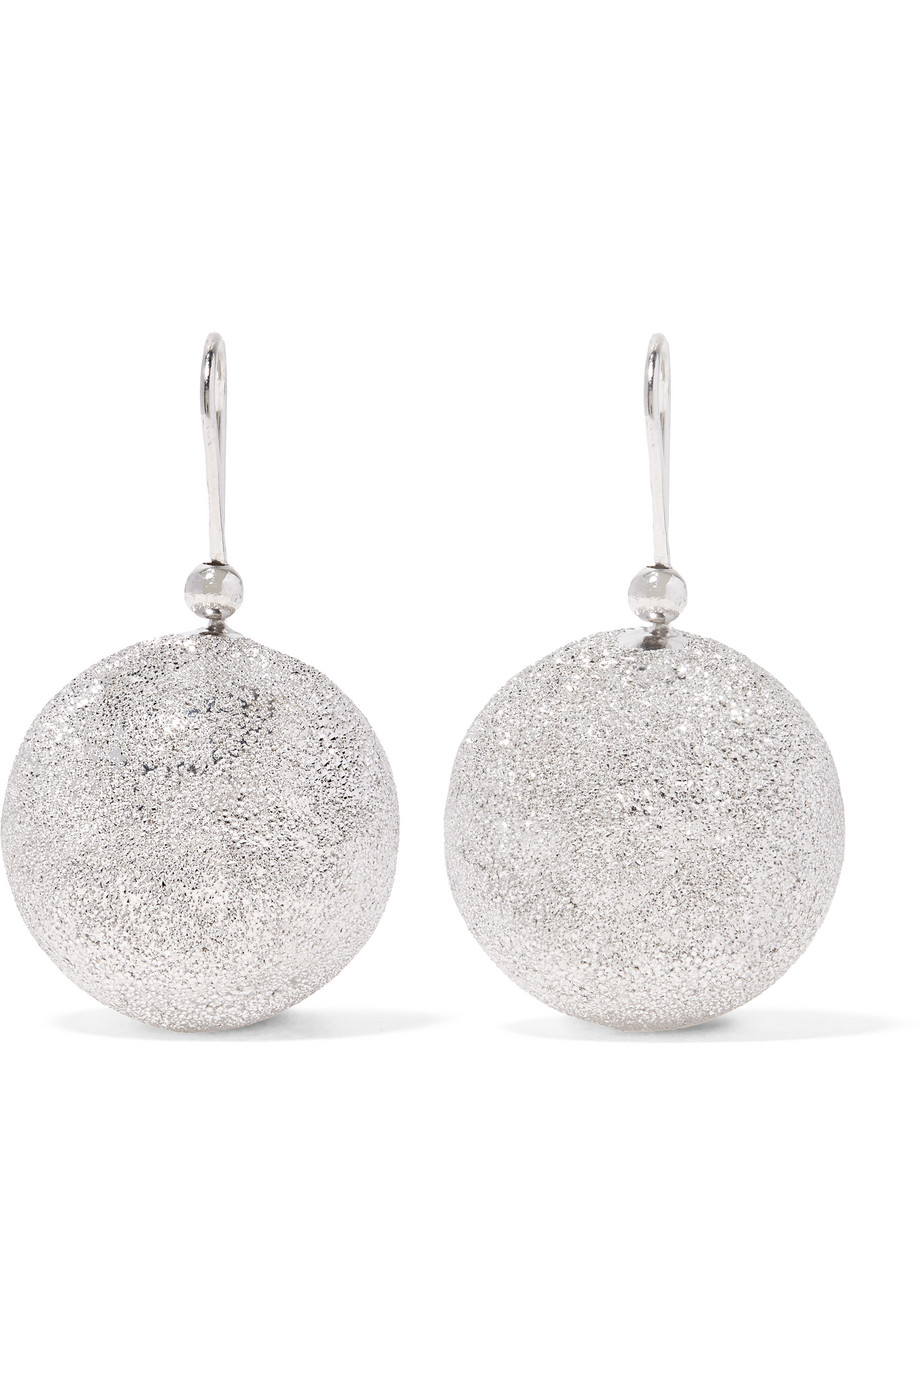 Carolina Bucci Mirador 18-Karat White Gold Earrings, Women's